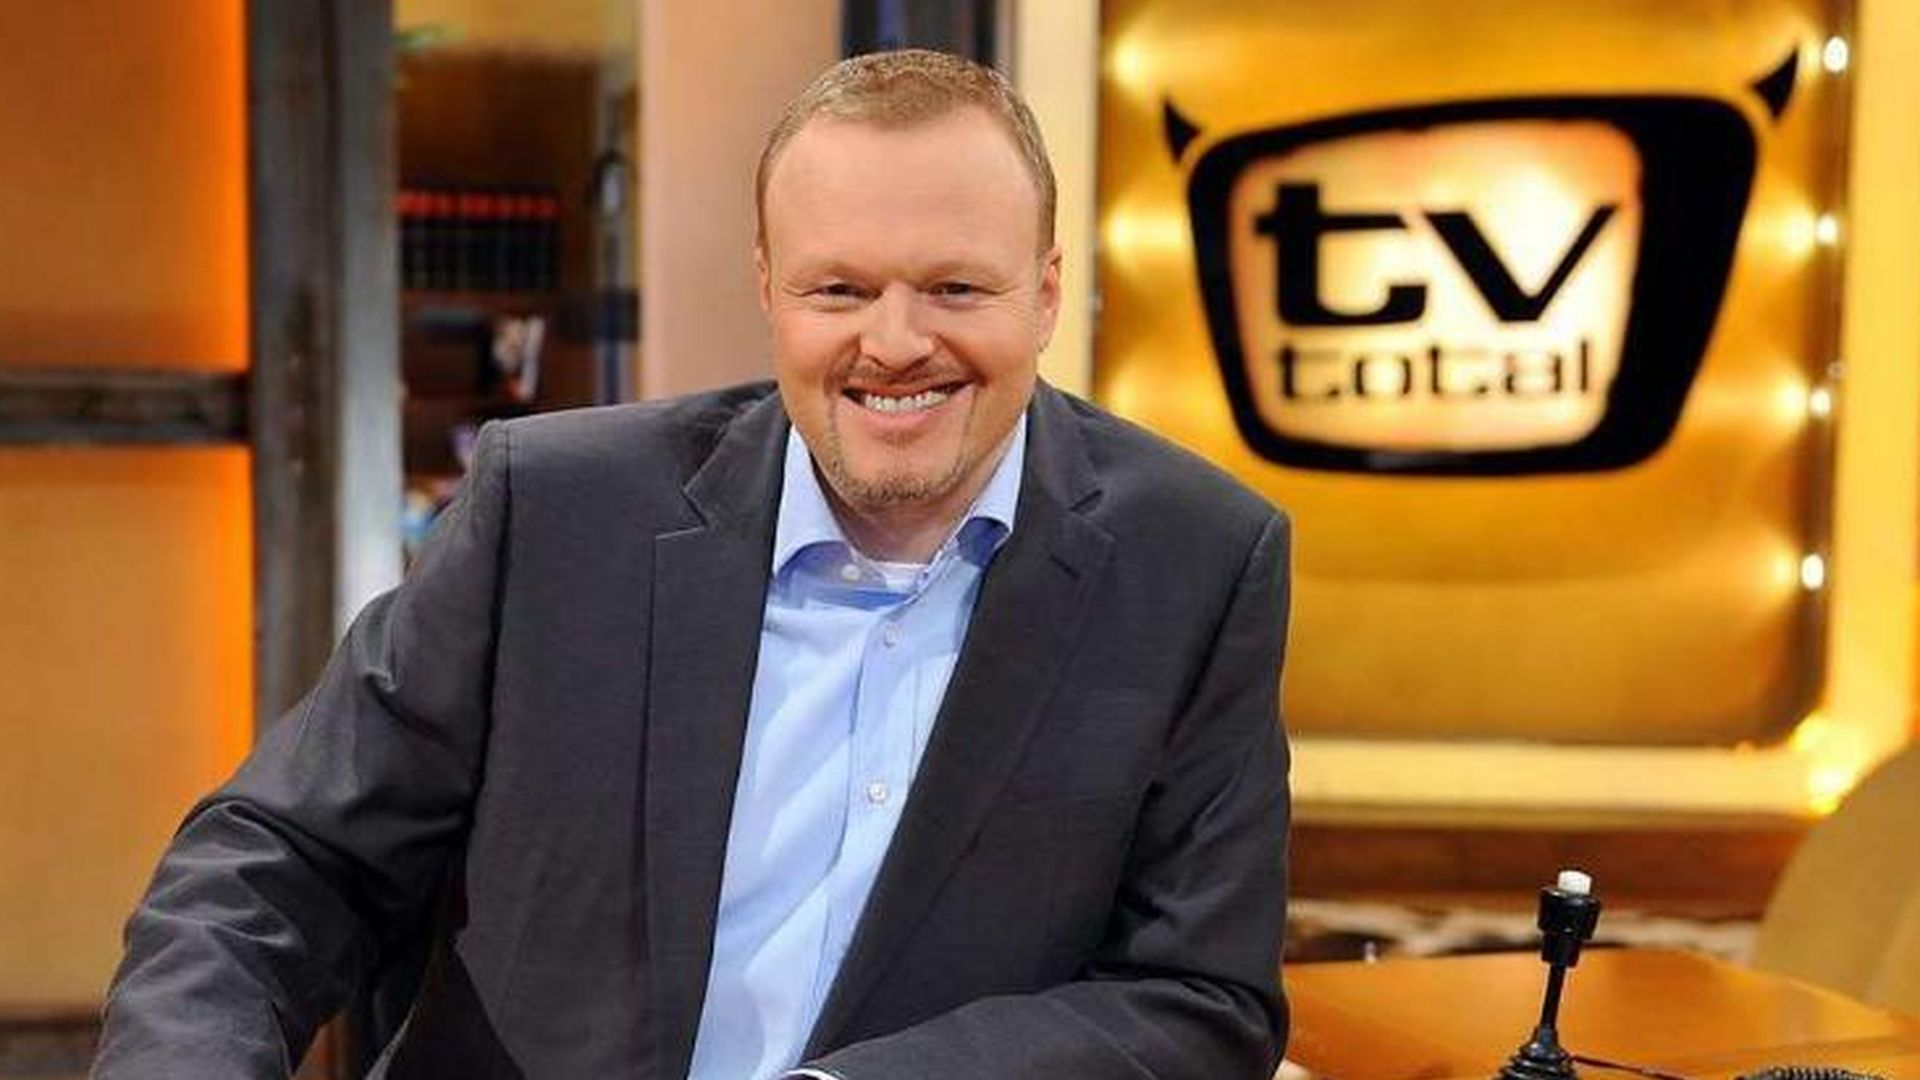 stefan raab abgang final termin f r tv total steht fest. Black Bedroom Furniture Sets. Home Design Ideas